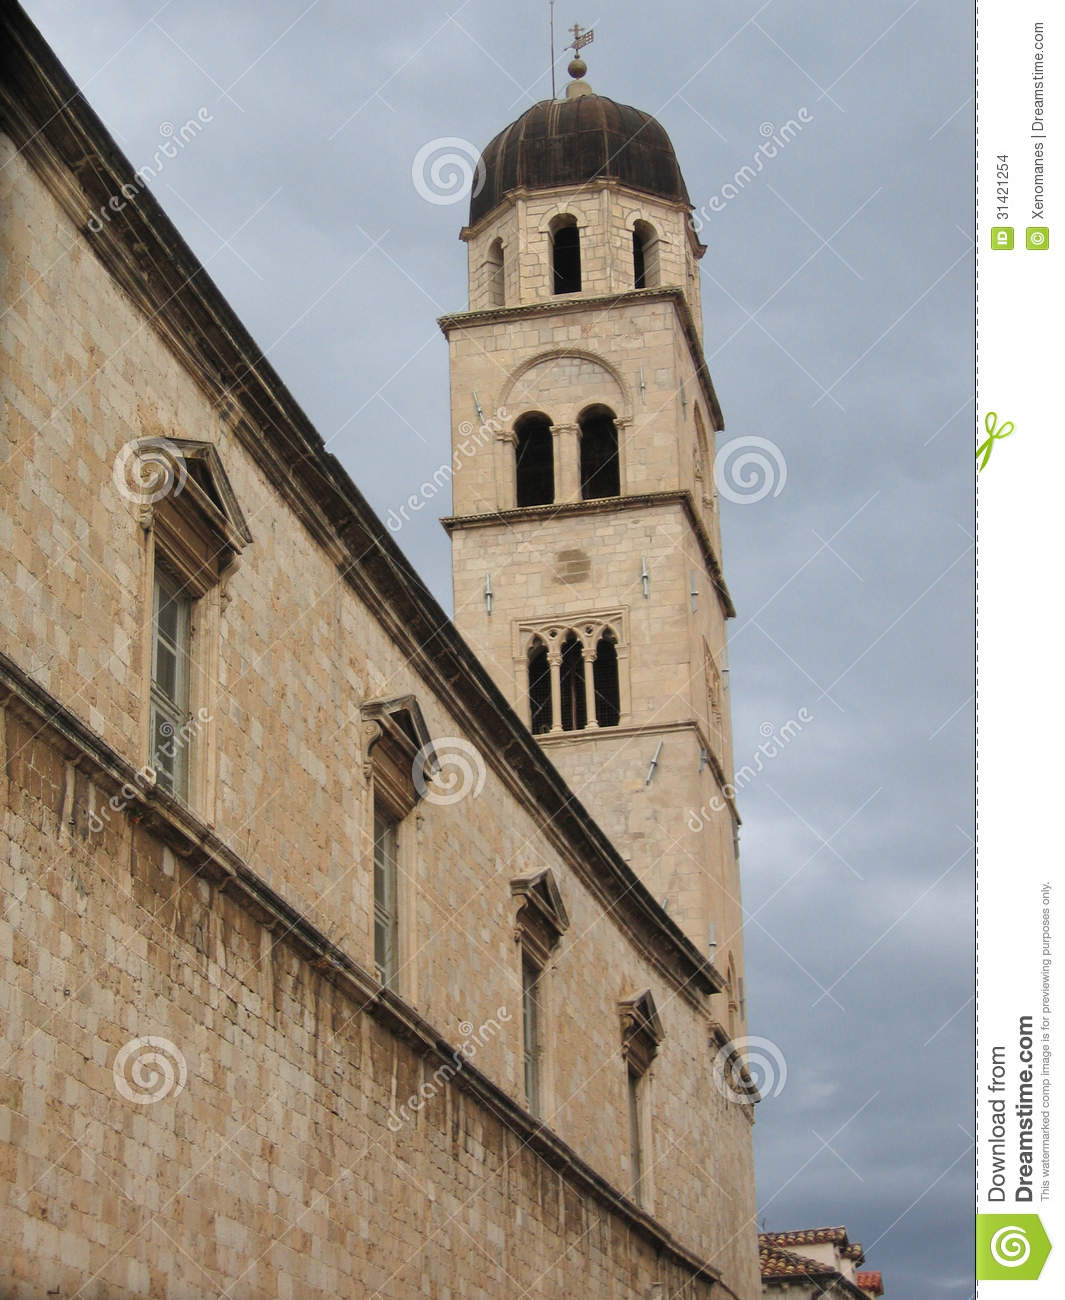 Croatia dubrovnik franciscan monastery tower unesco 39 s - The house in the old franciscan tower ...